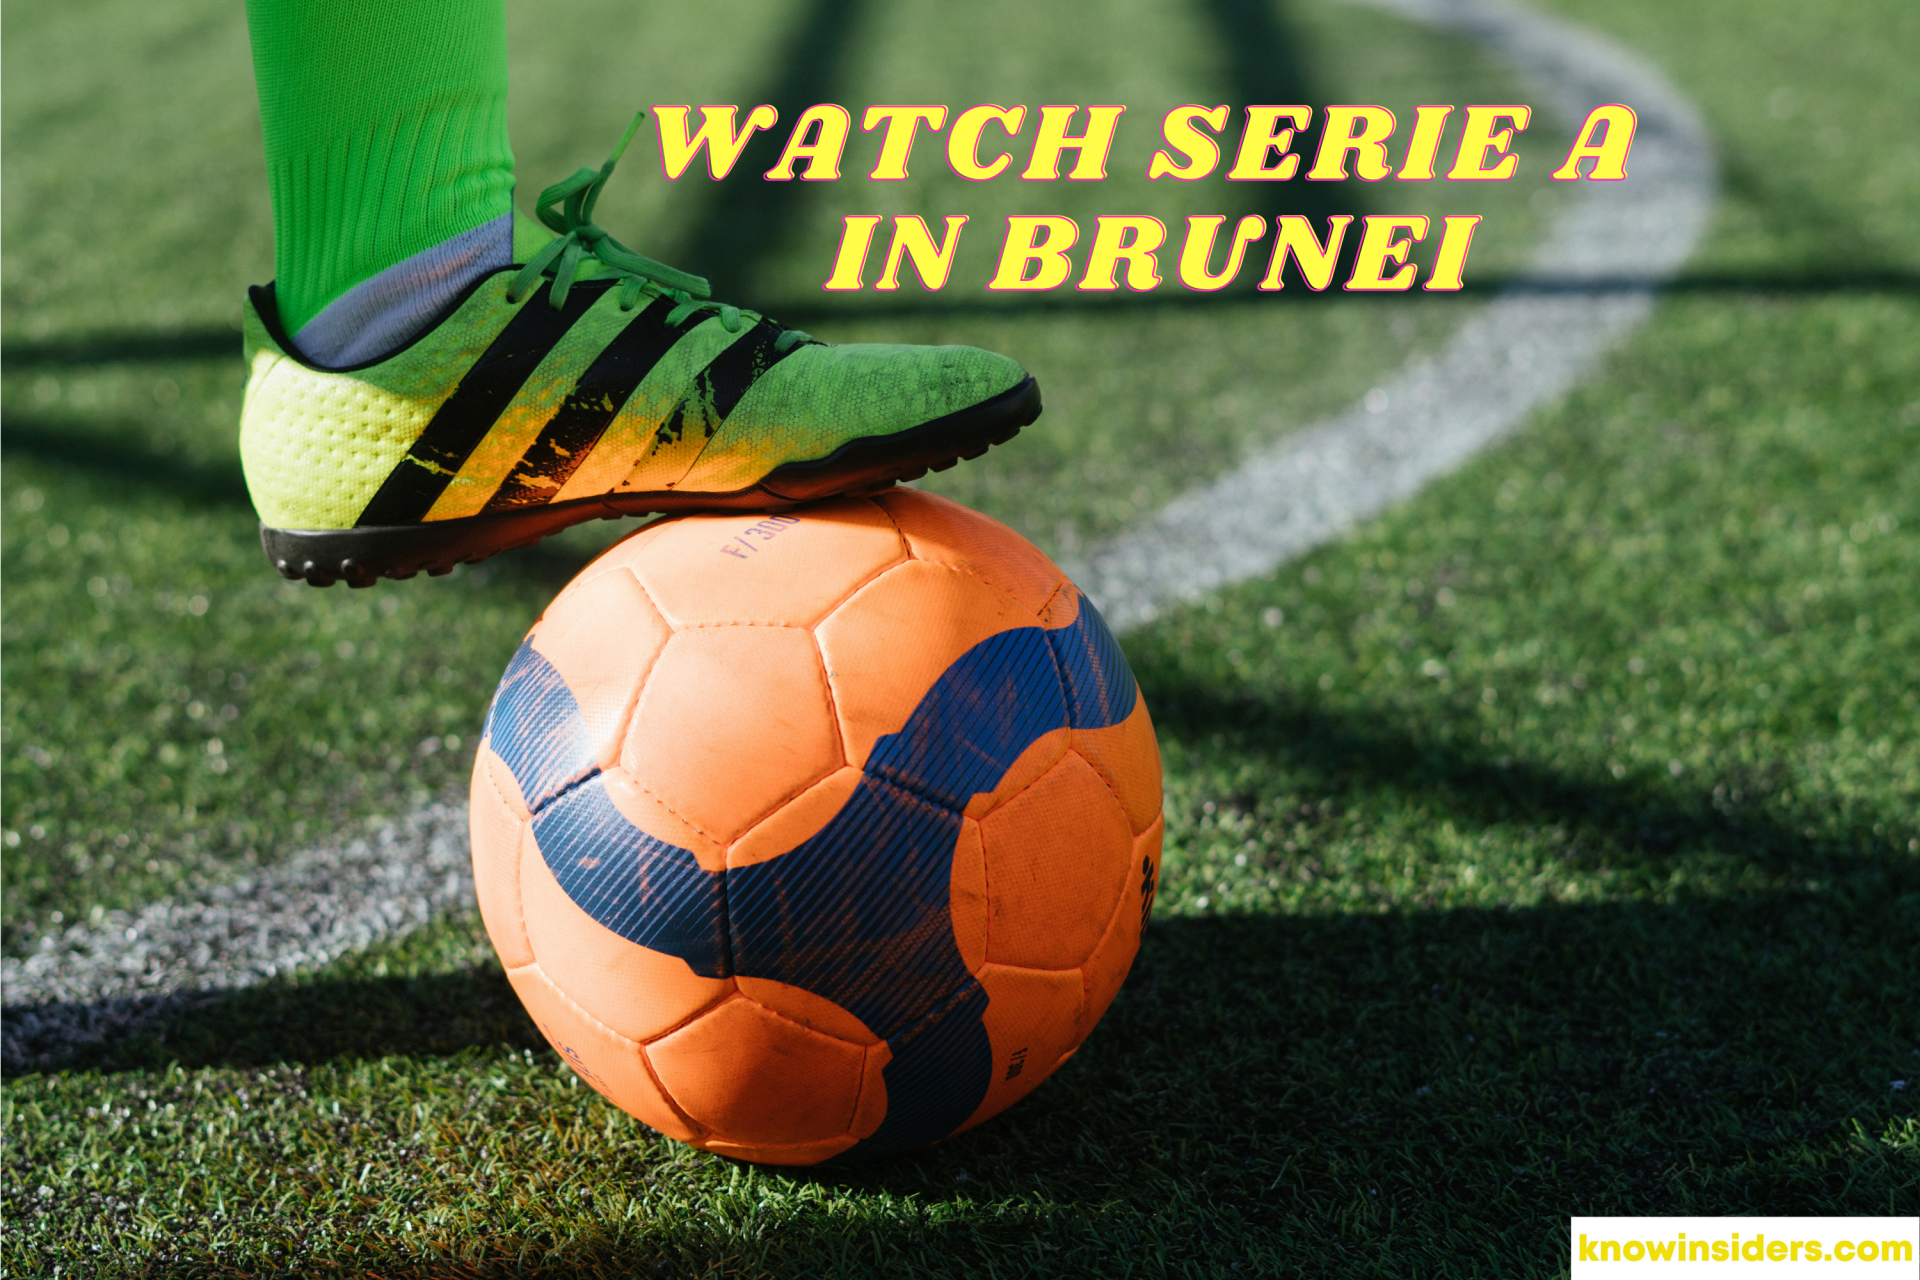 Watch Live Italian Serie A In Brunei for FREE: TV Channel, Live Stream, Online